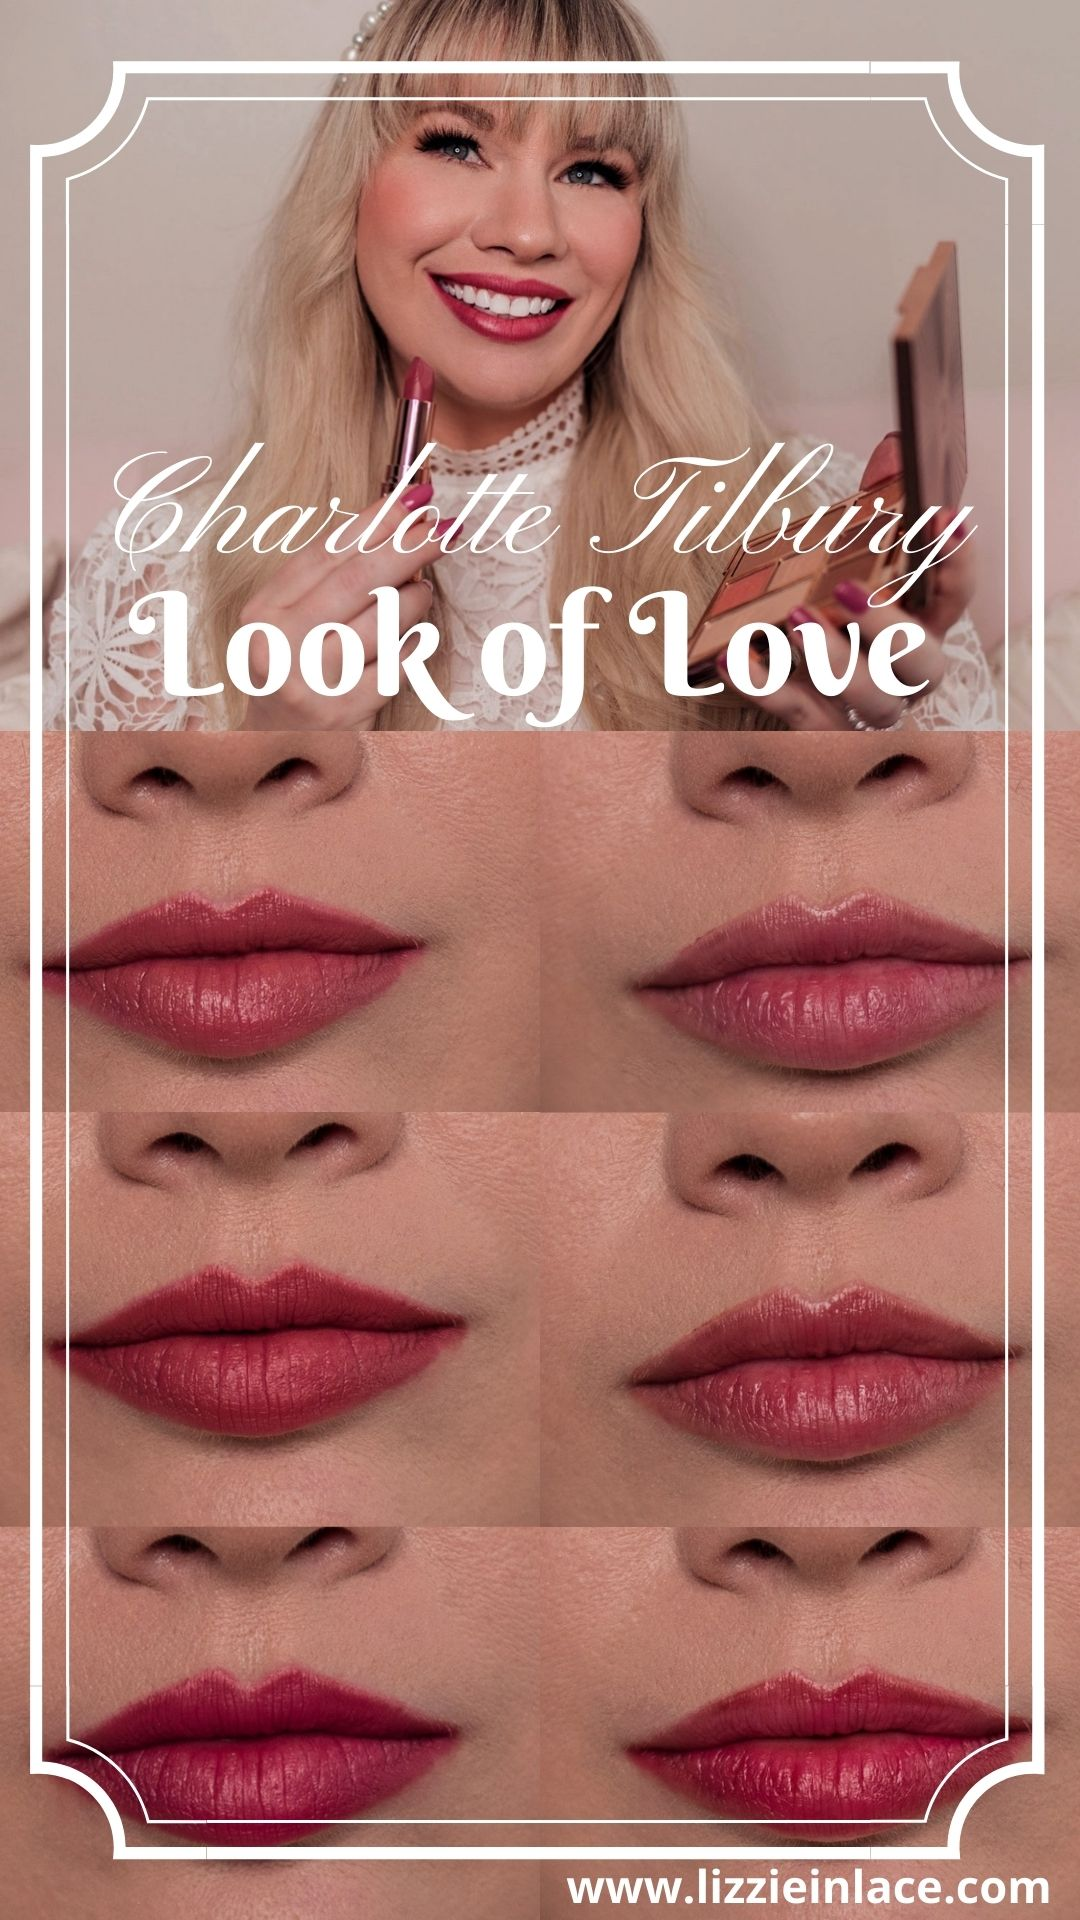 Feminine fashion and beauty blogger Elizabeth Hugen of Lizzie in Lace shares the Charlotte Tilbury Look of Love Collection Review and lipstick swatches